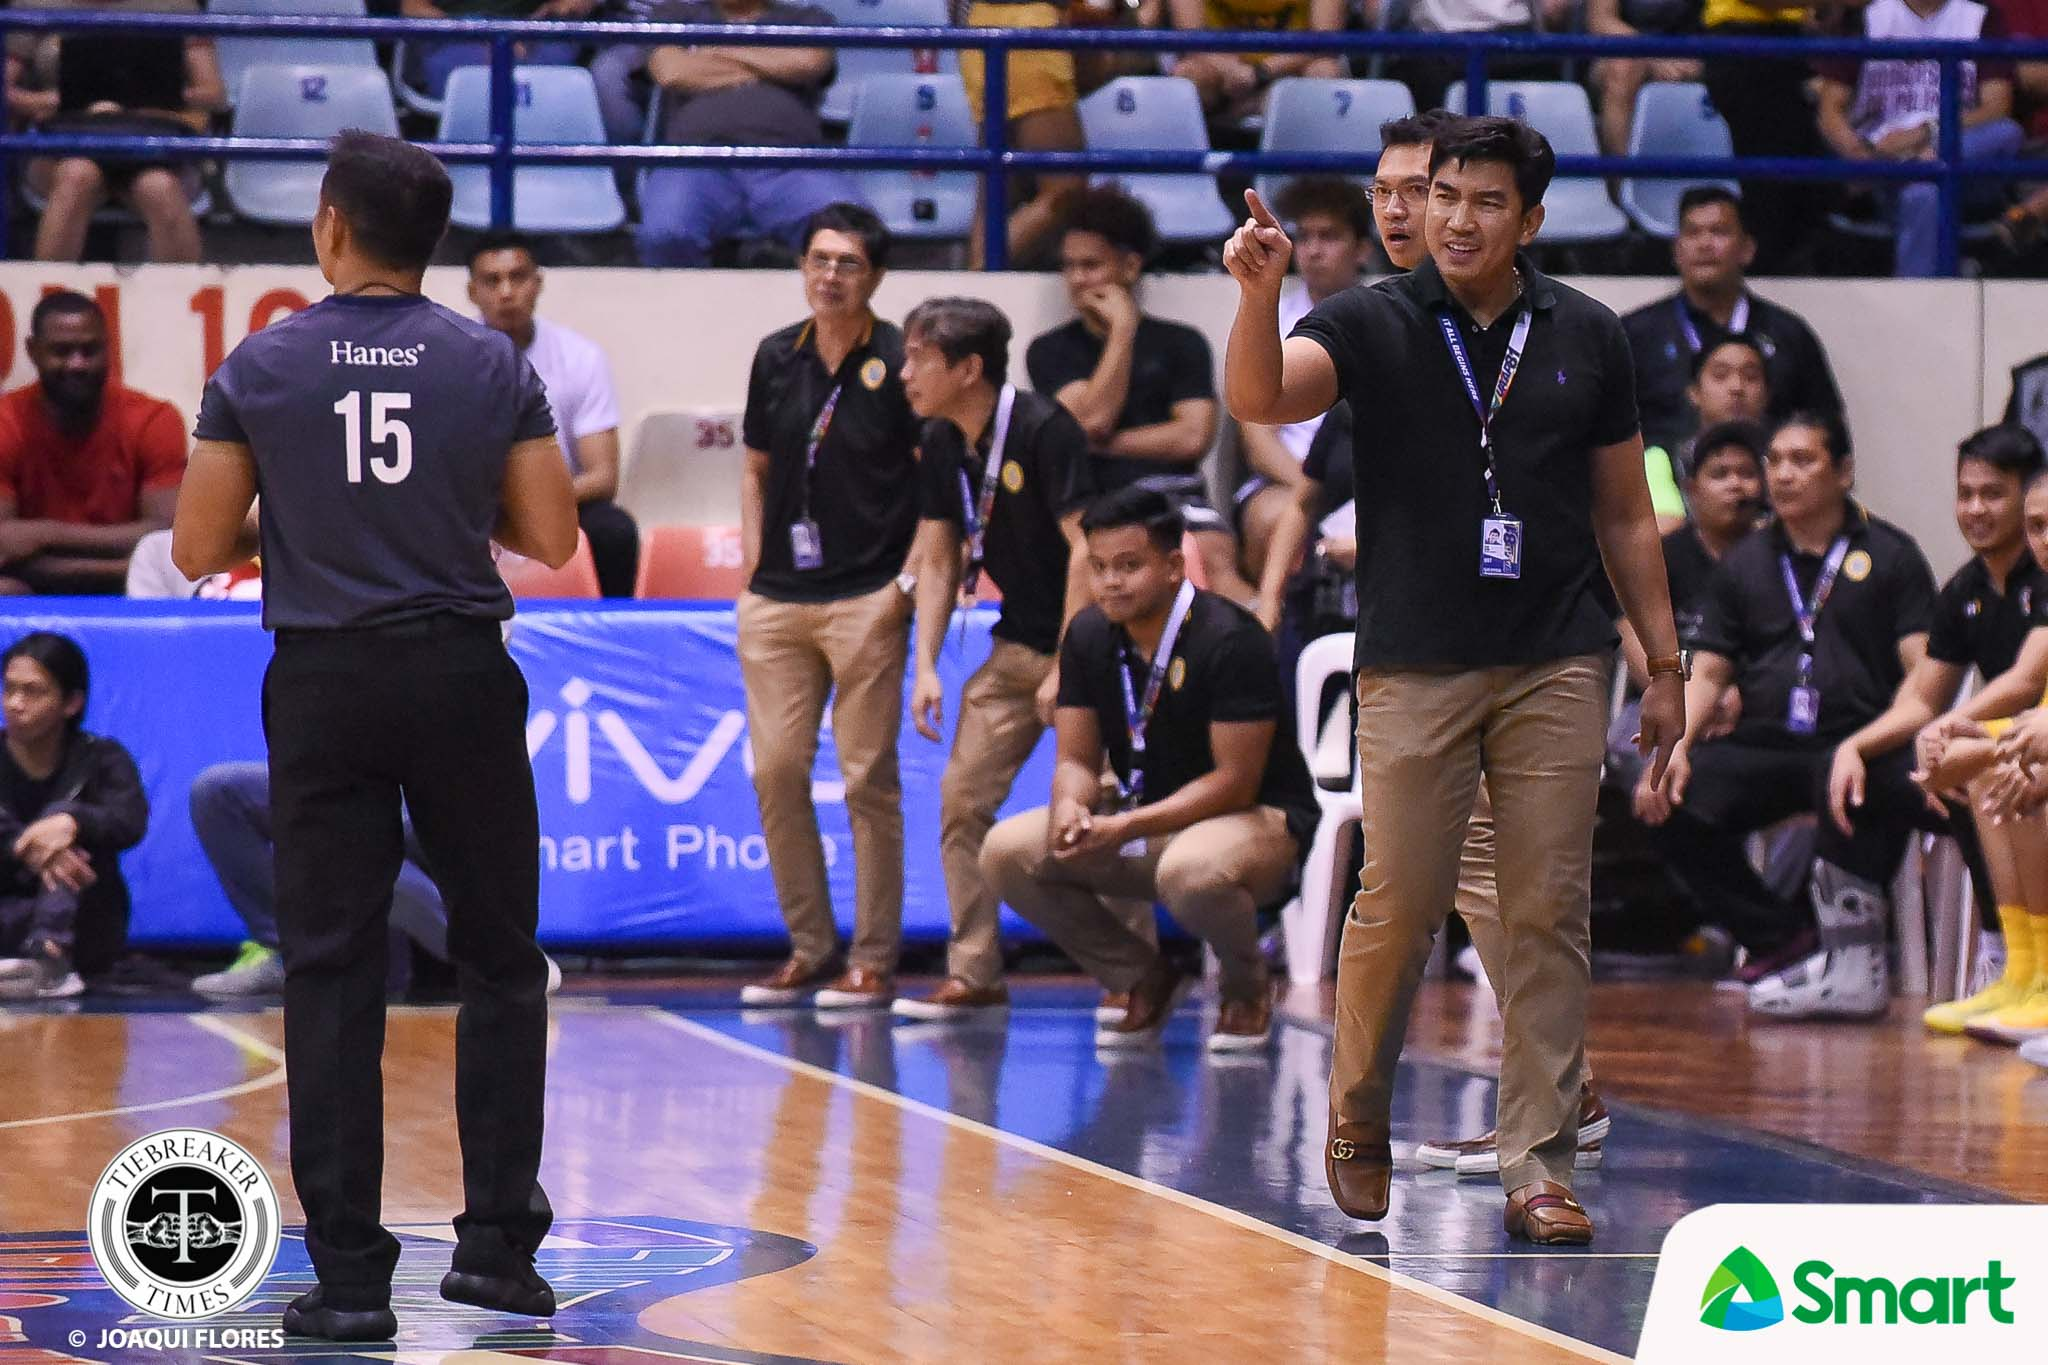 Tiebreaker Times Aldin Ayo remains laser-focused on long-term goal: 'We just did not play our game' Basketball News UAAP UST  UST Men's Basketball UAAP Season 81 Men's Basketball UAAP Season 81 Aldin Ayo